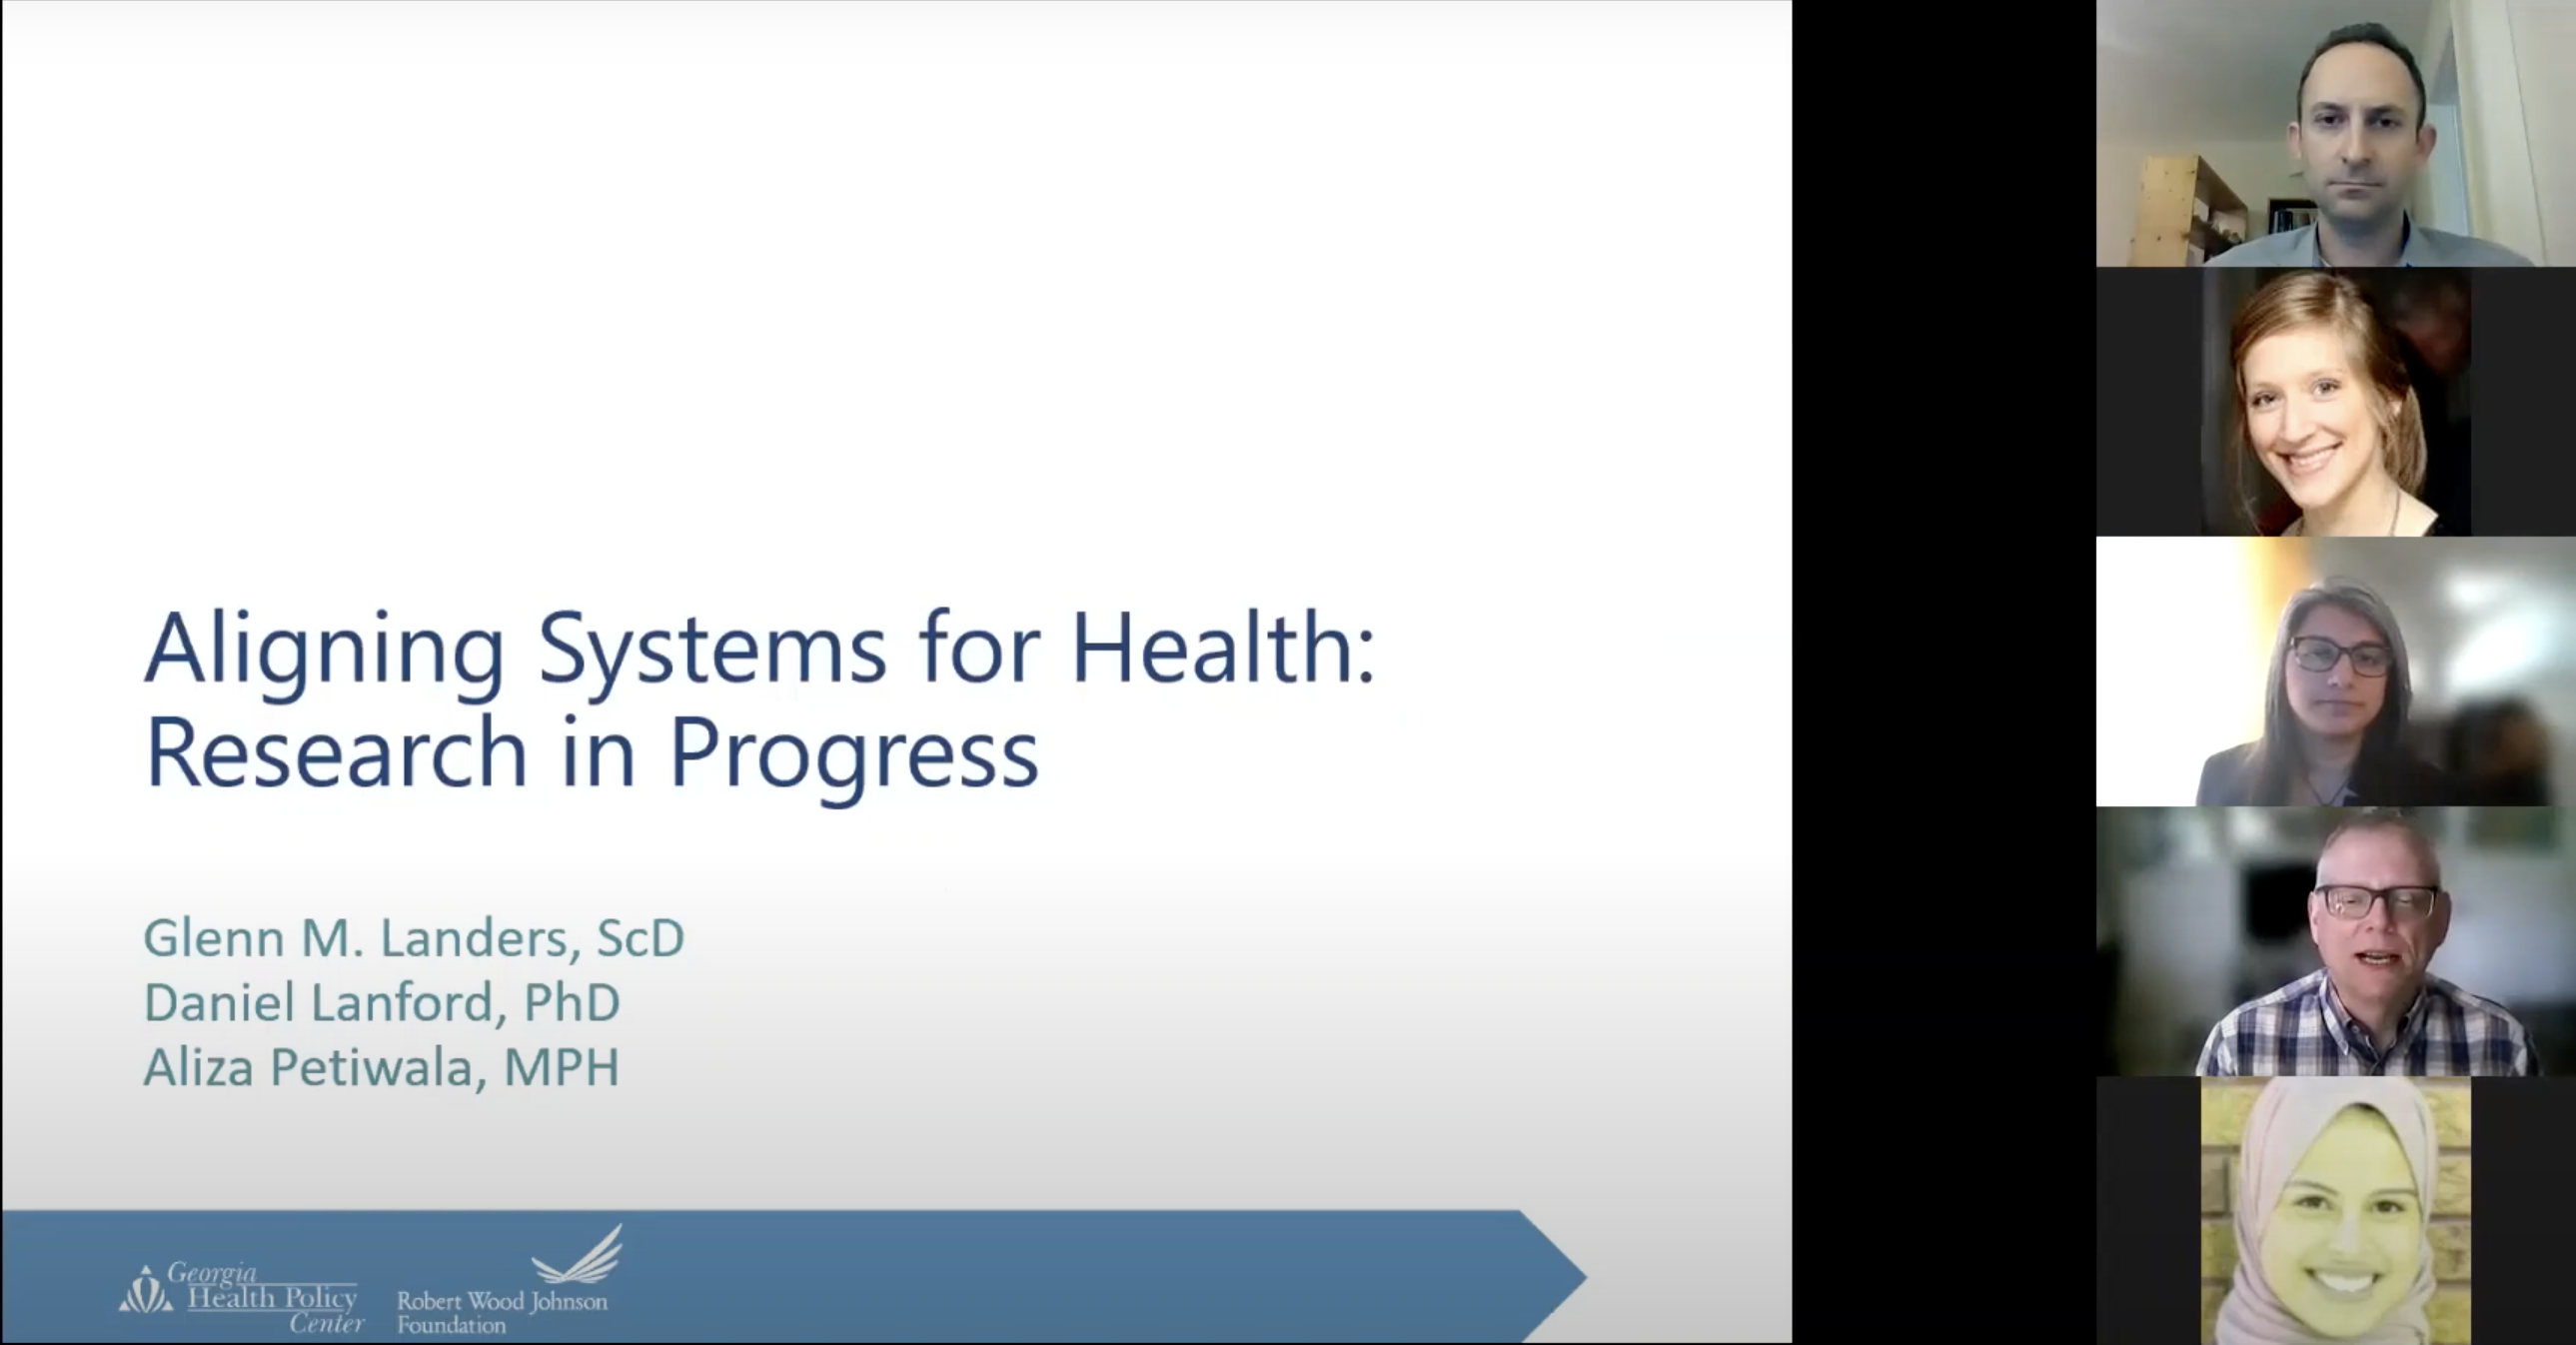 Addressing Systems for Health: Health Care, Public Health and Social Services